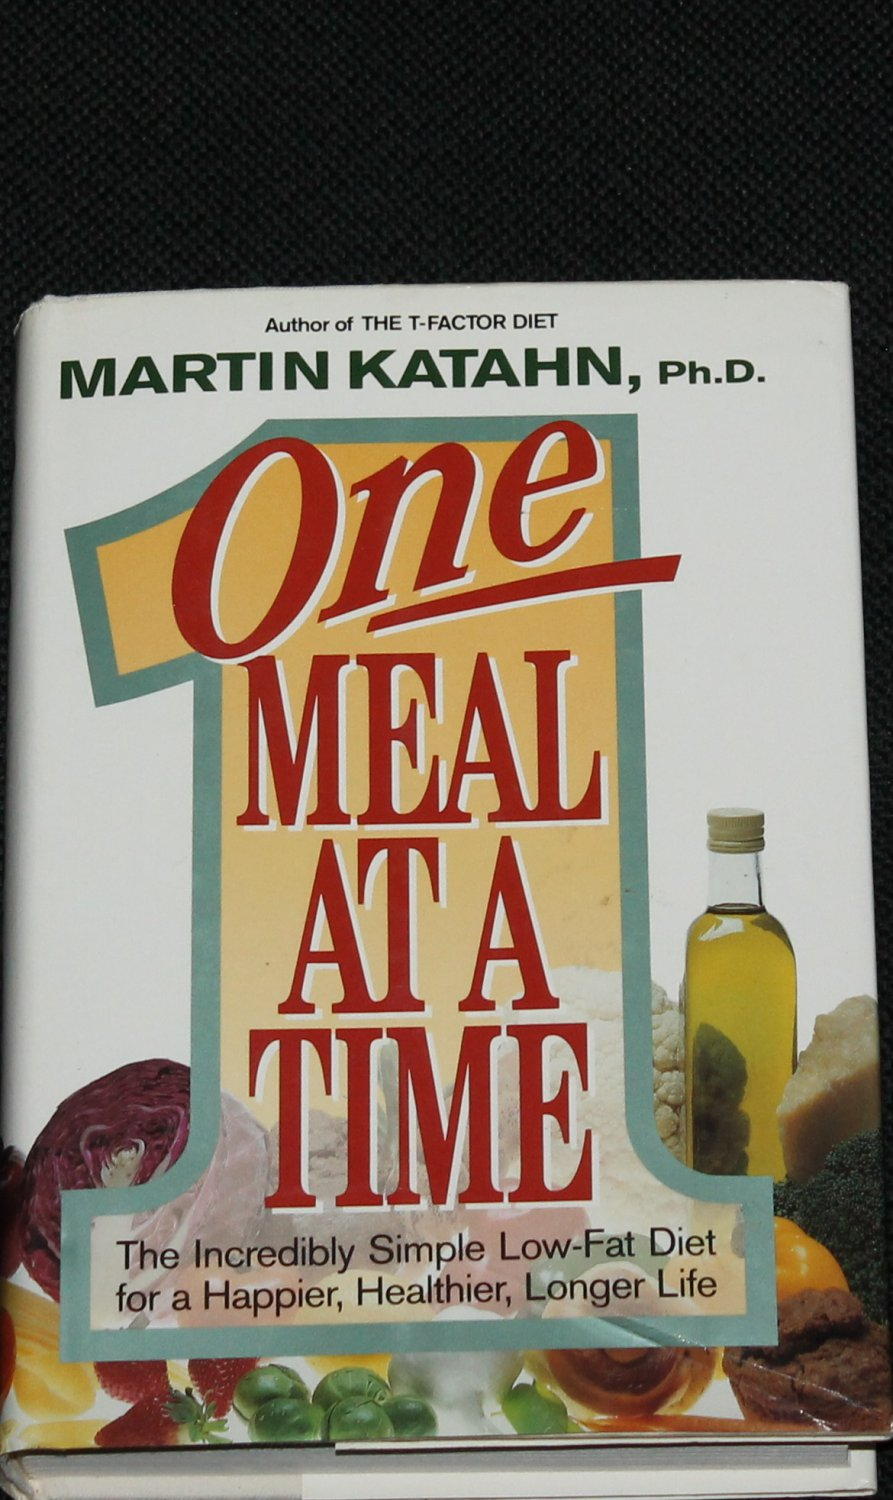 One Meal At Time weight loss book lose weight pounds food diet health eat eating book Martin Katahn